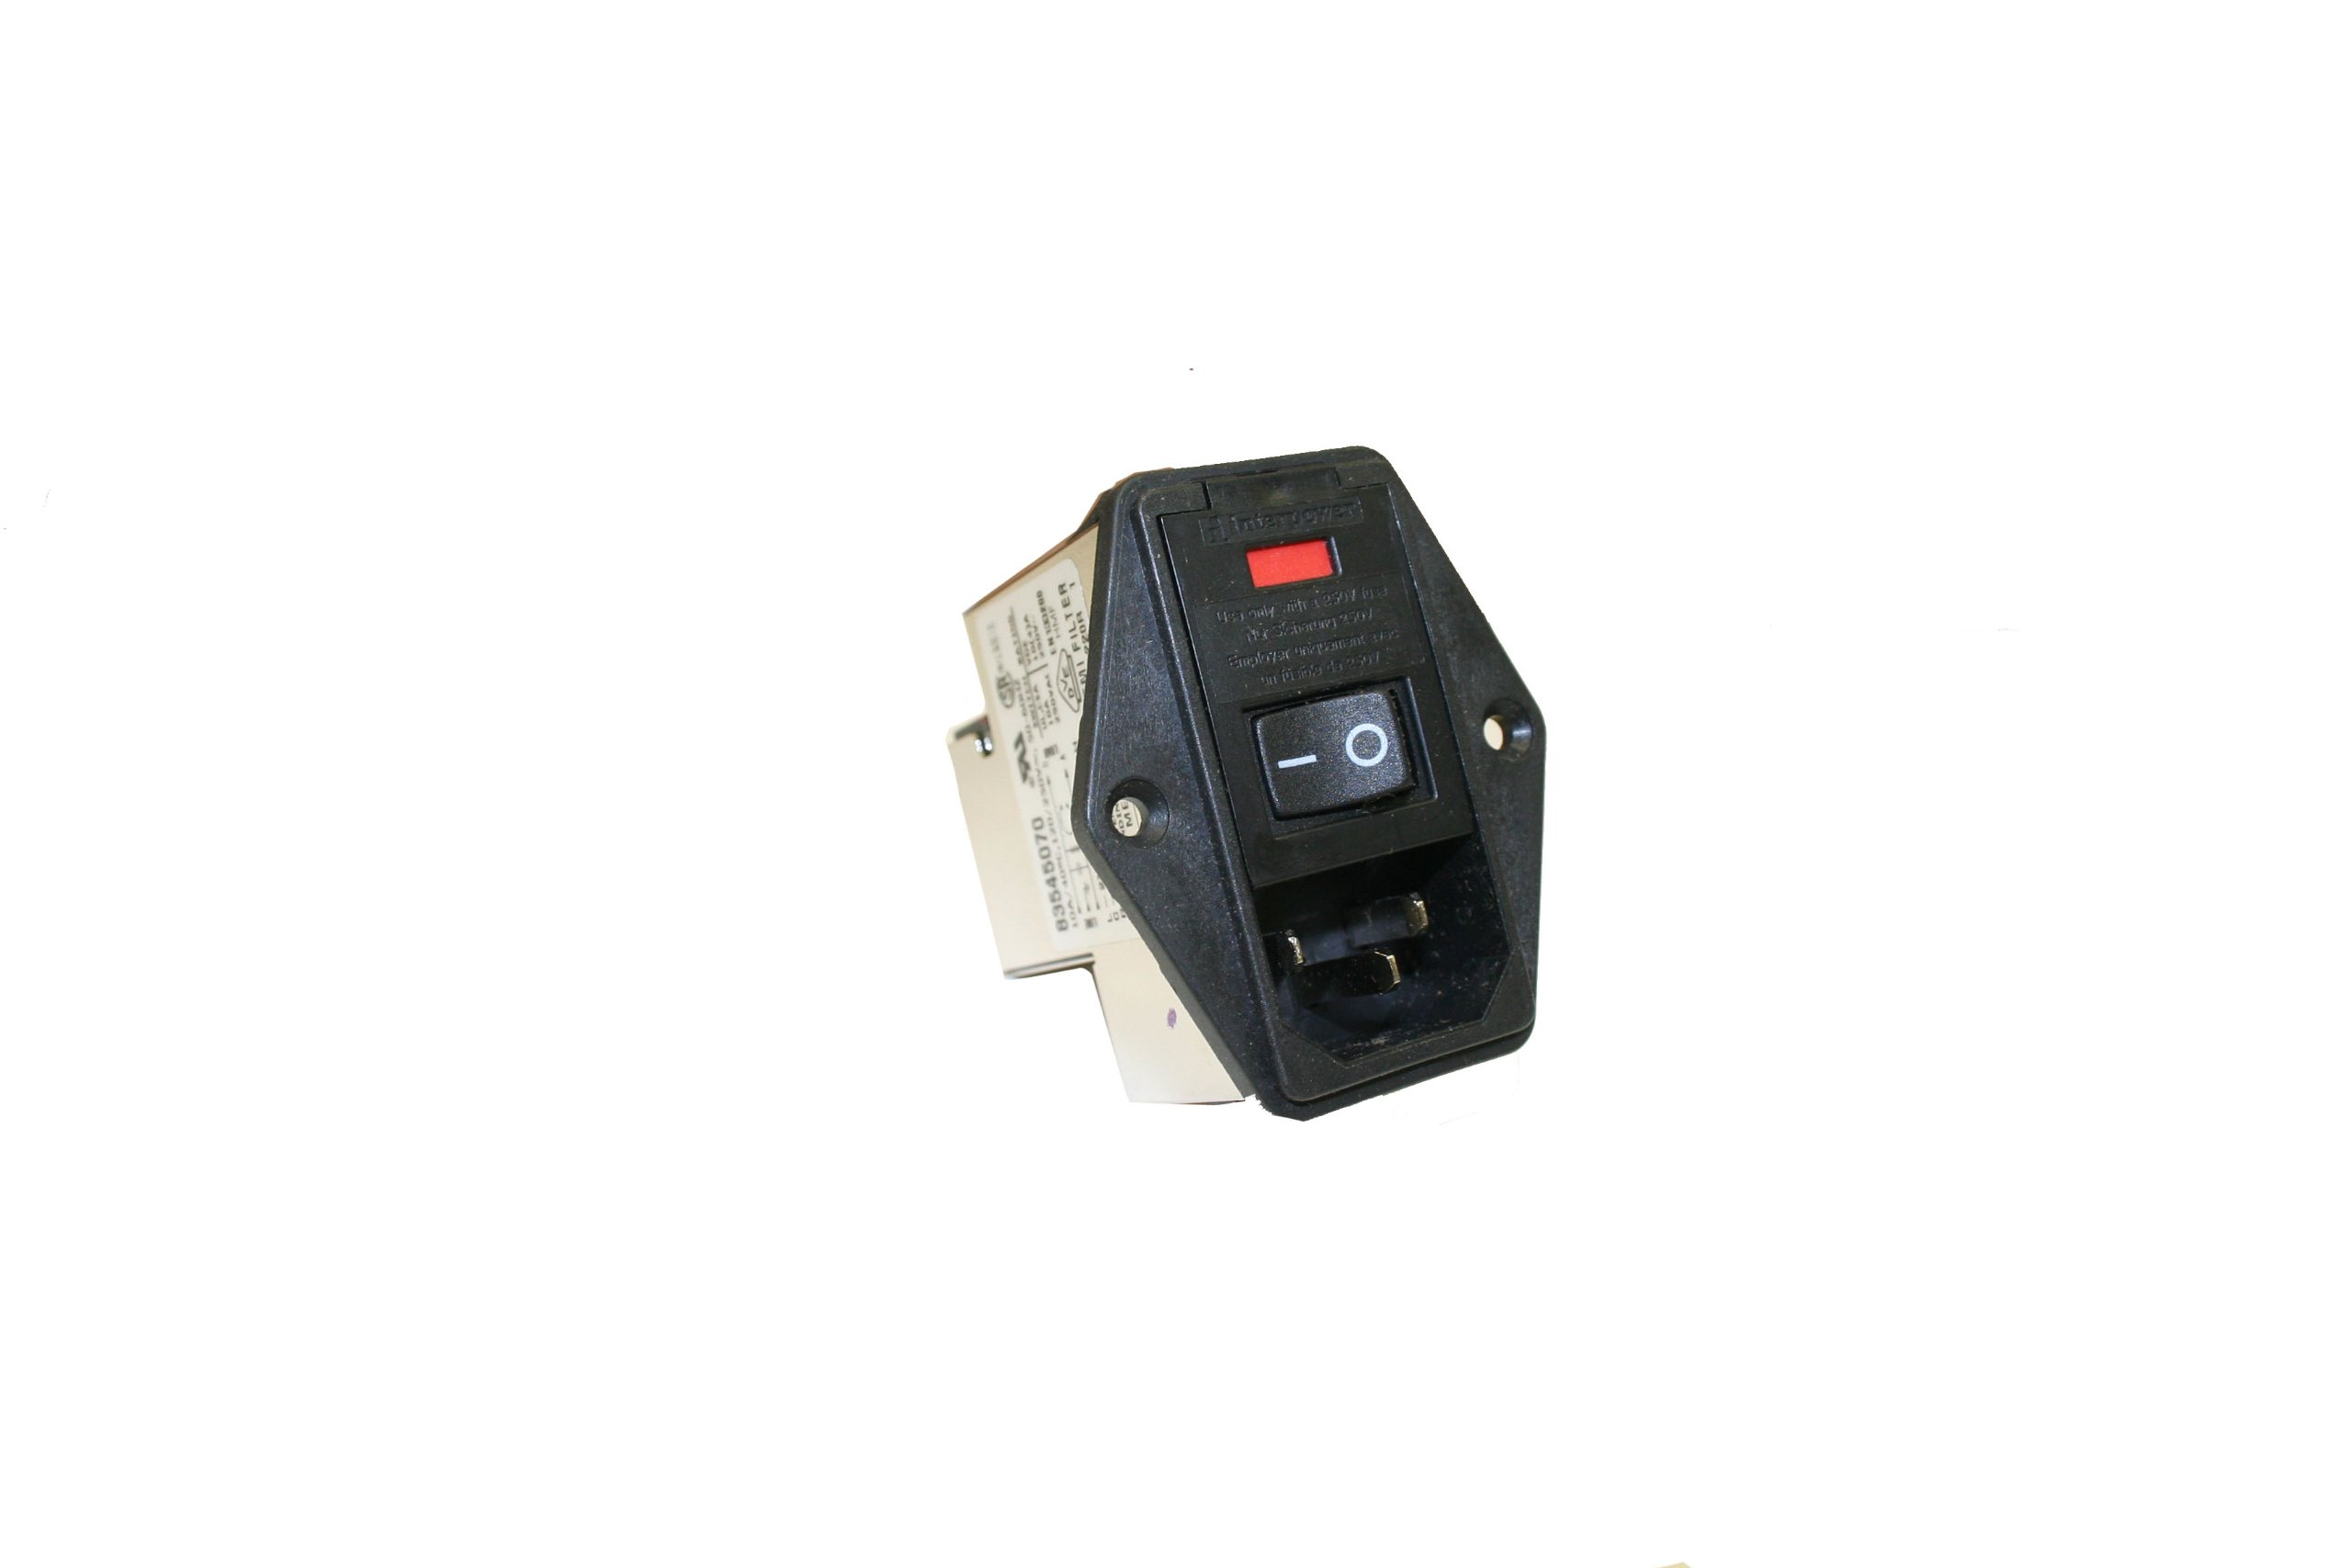 Interpower 83545070 Four Function Medical Grade Module, C14 Inlet, Switch, Double Fused, Filter, 10A Current Rating, 120/250VAC Voltage Rating